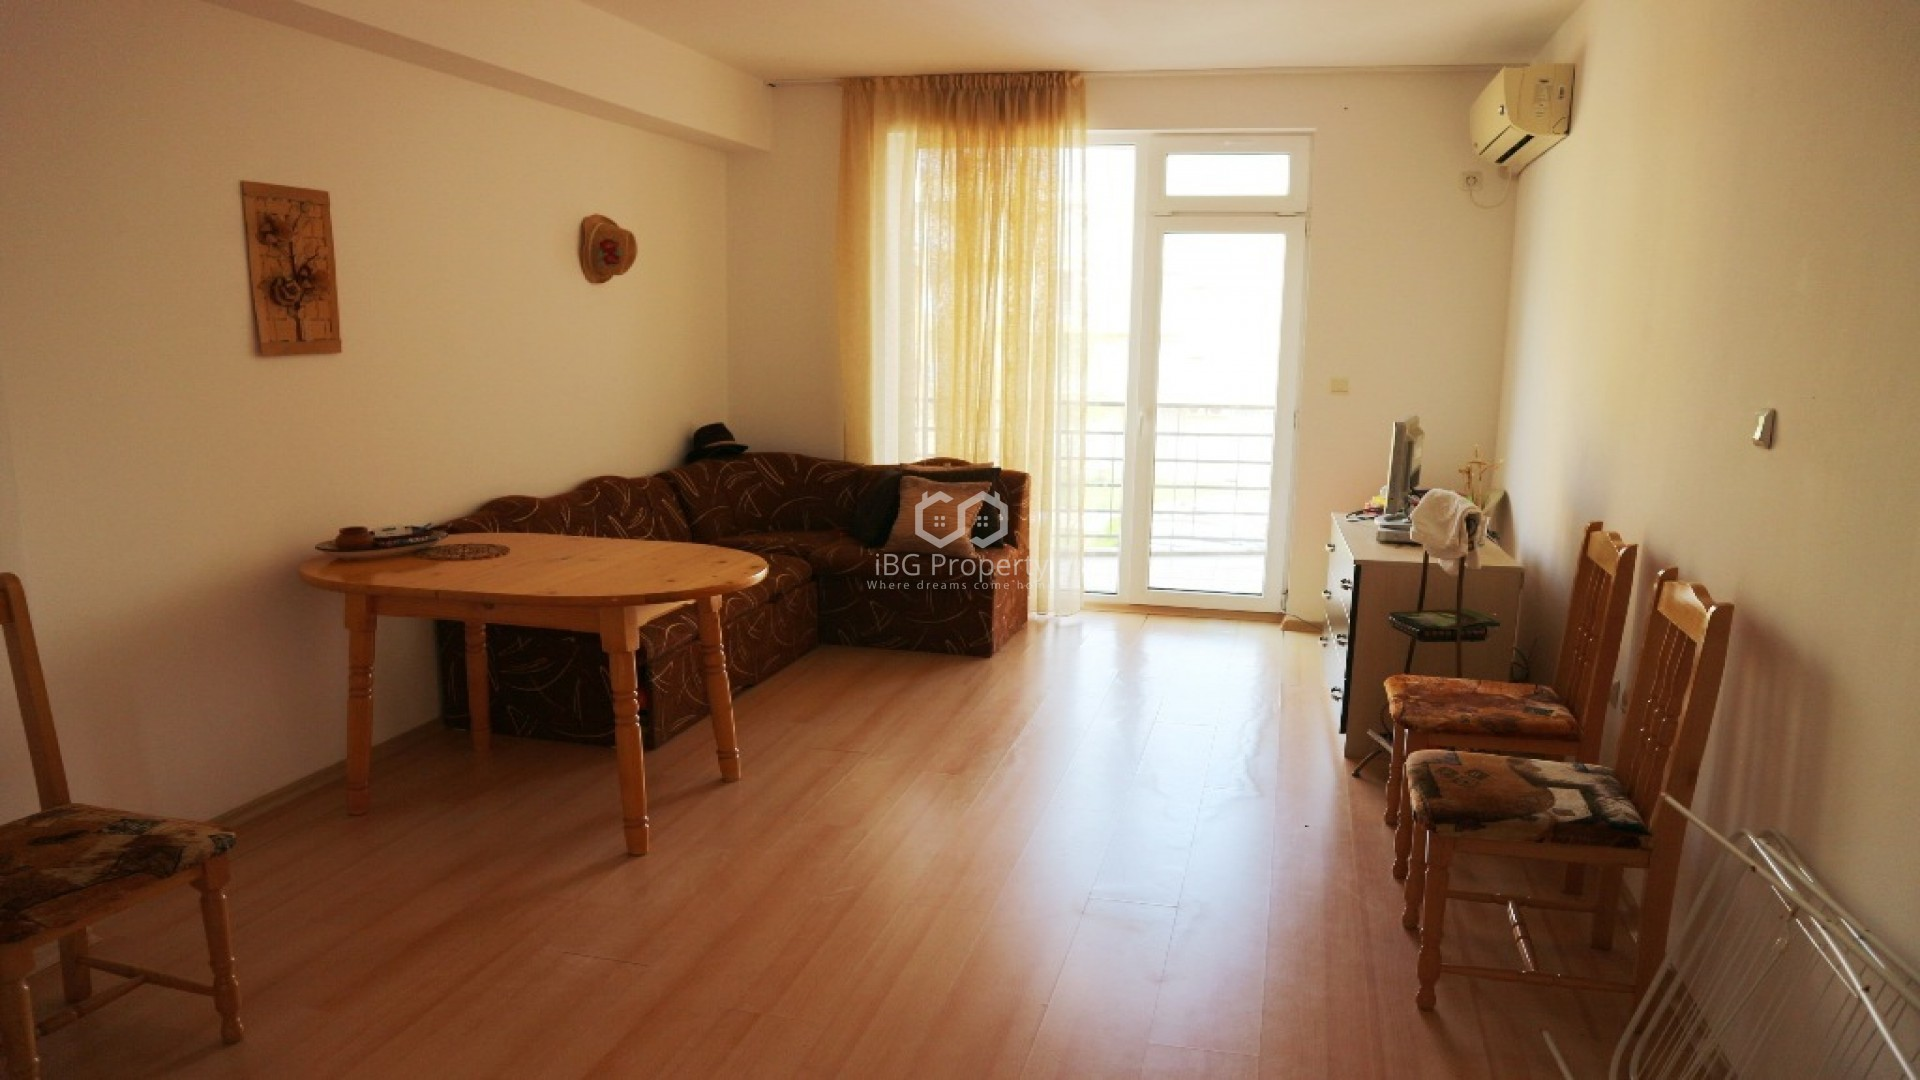 One bedroom apartment Sunny Beach 54 m2